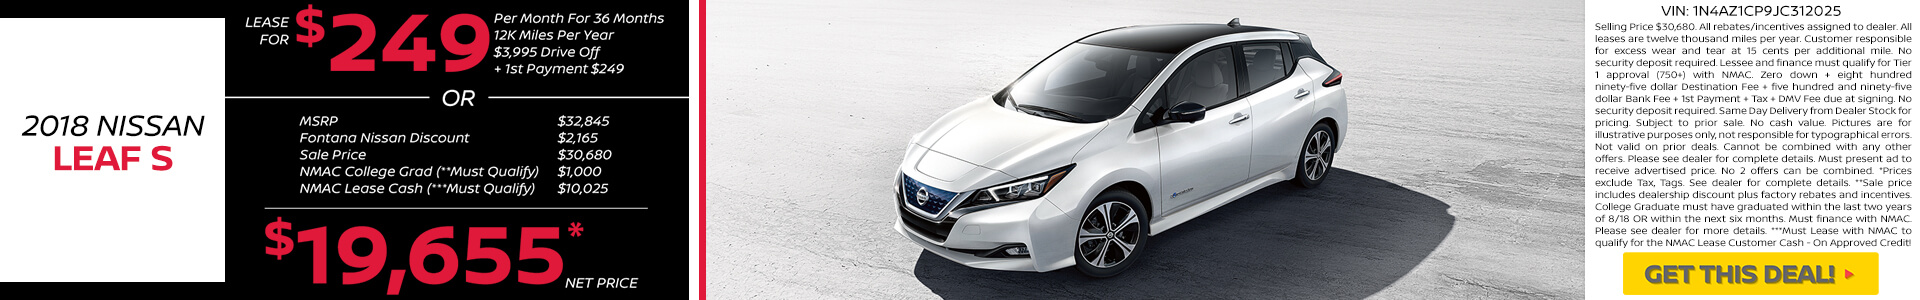 Nissan Leaf $249 Lease and $19,655 Purchase